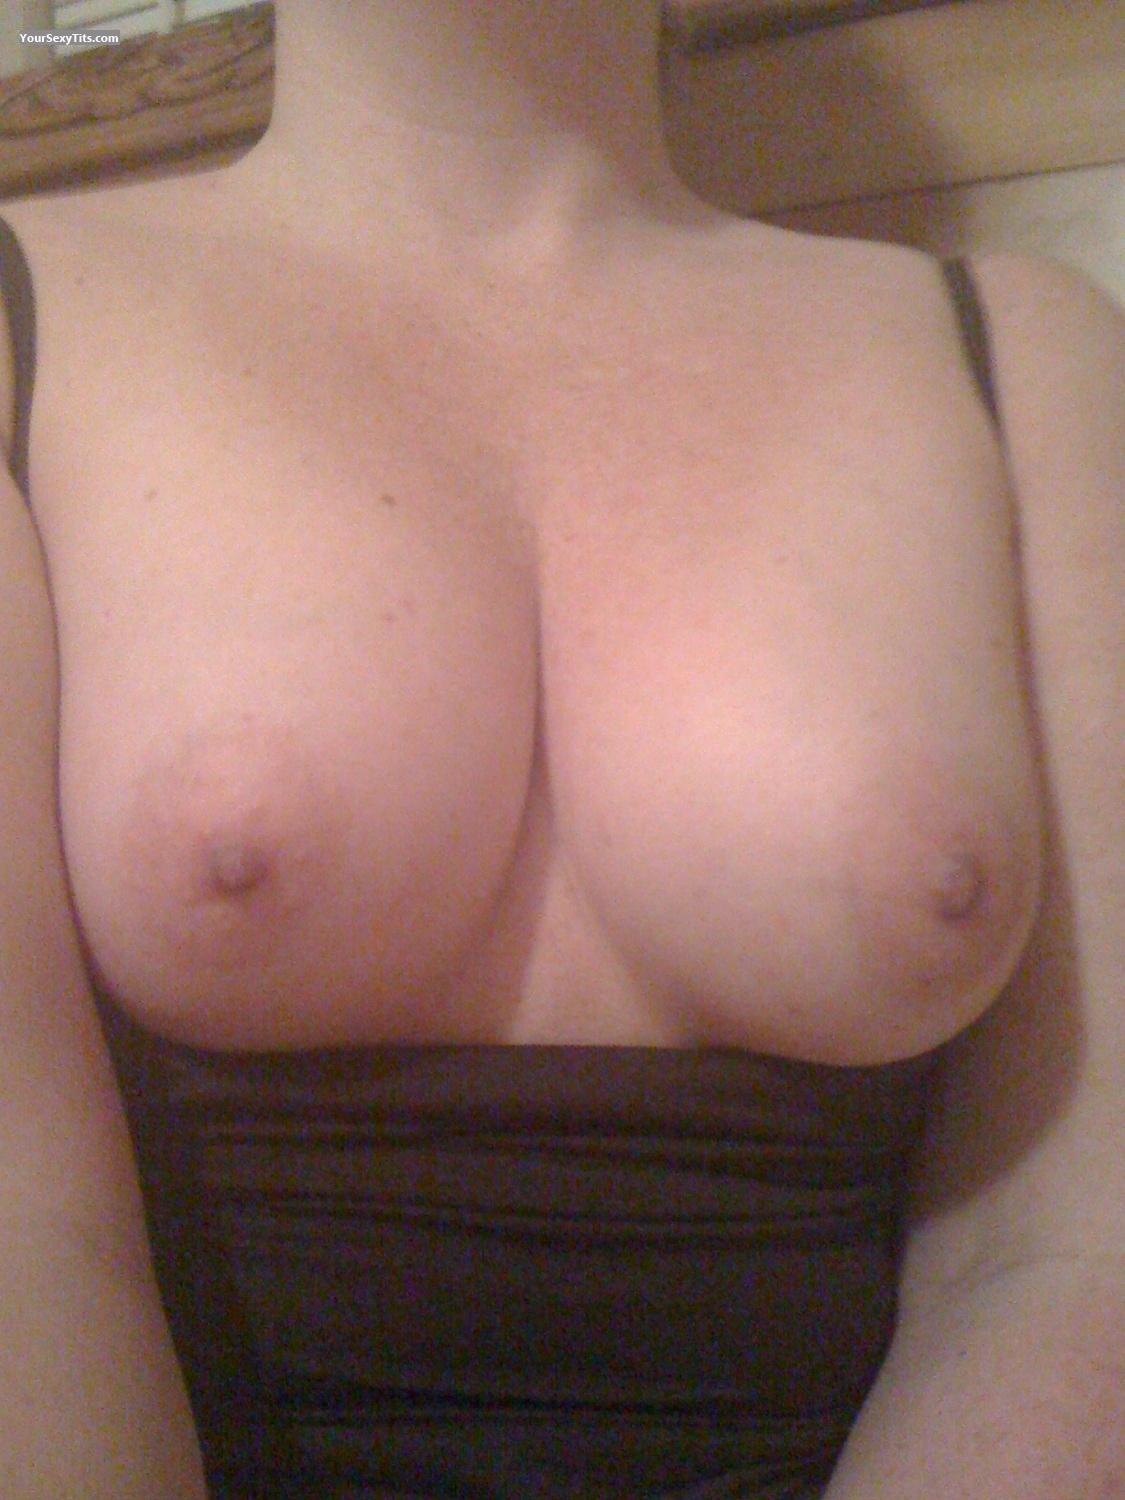 My Medium Tits Selfie by Fun2play